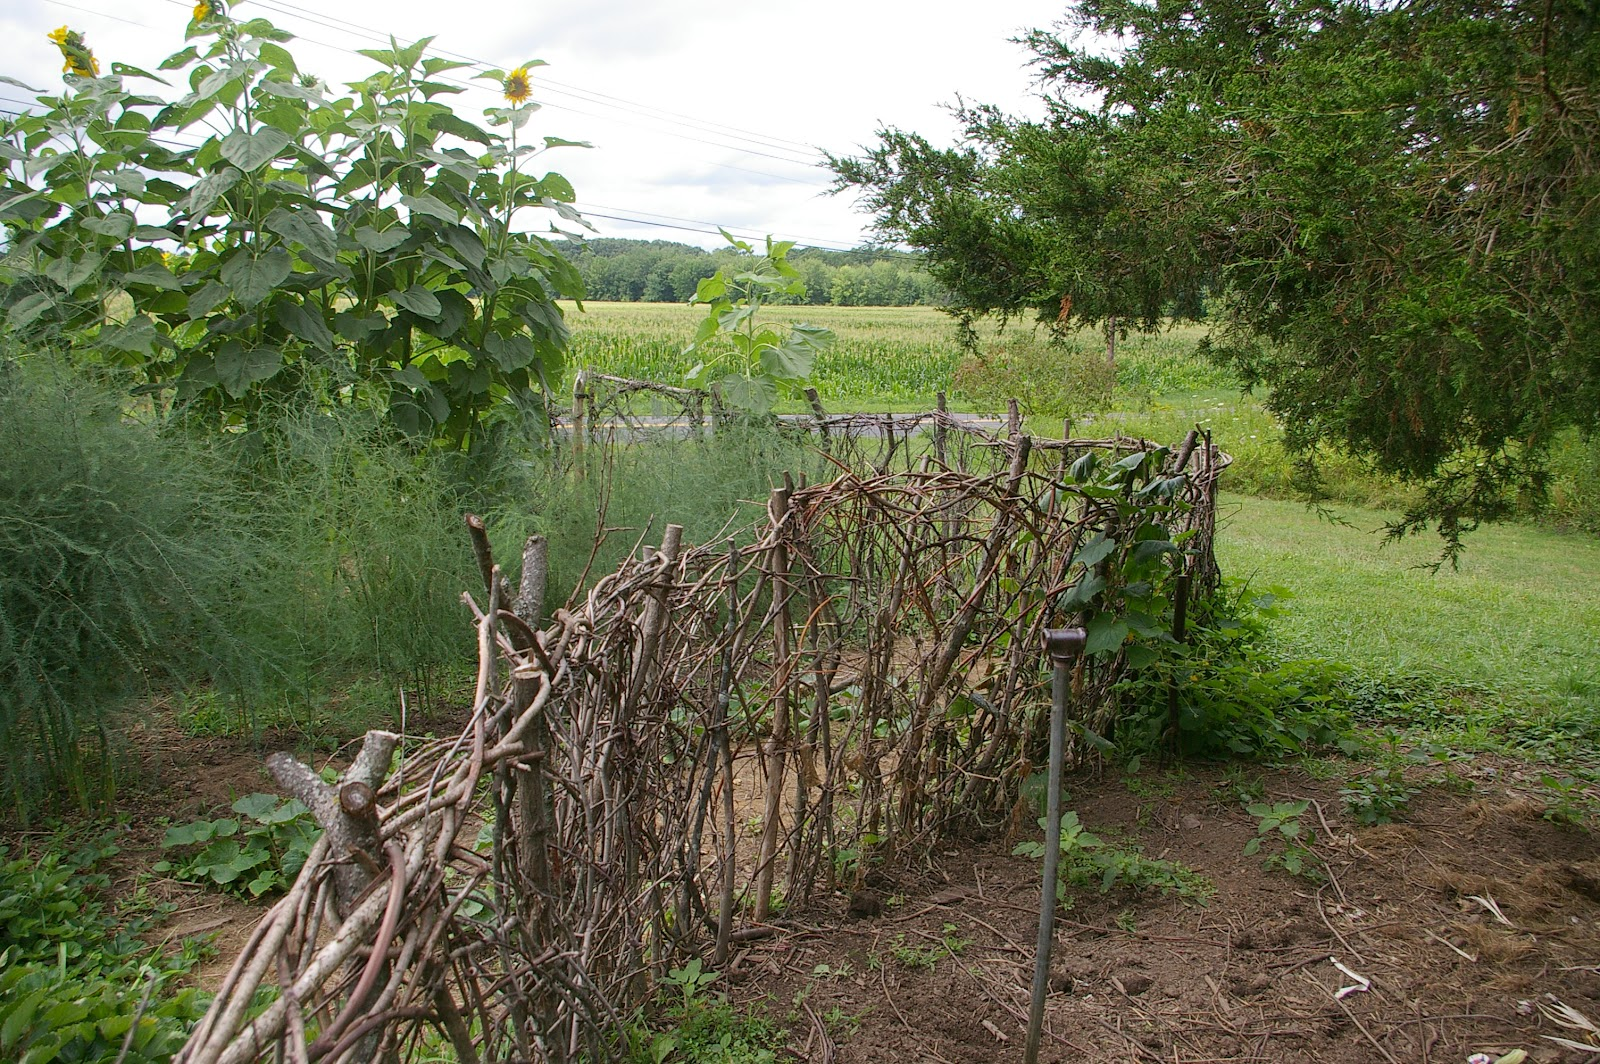 Then another gate this time made with old junk wood from in the barn